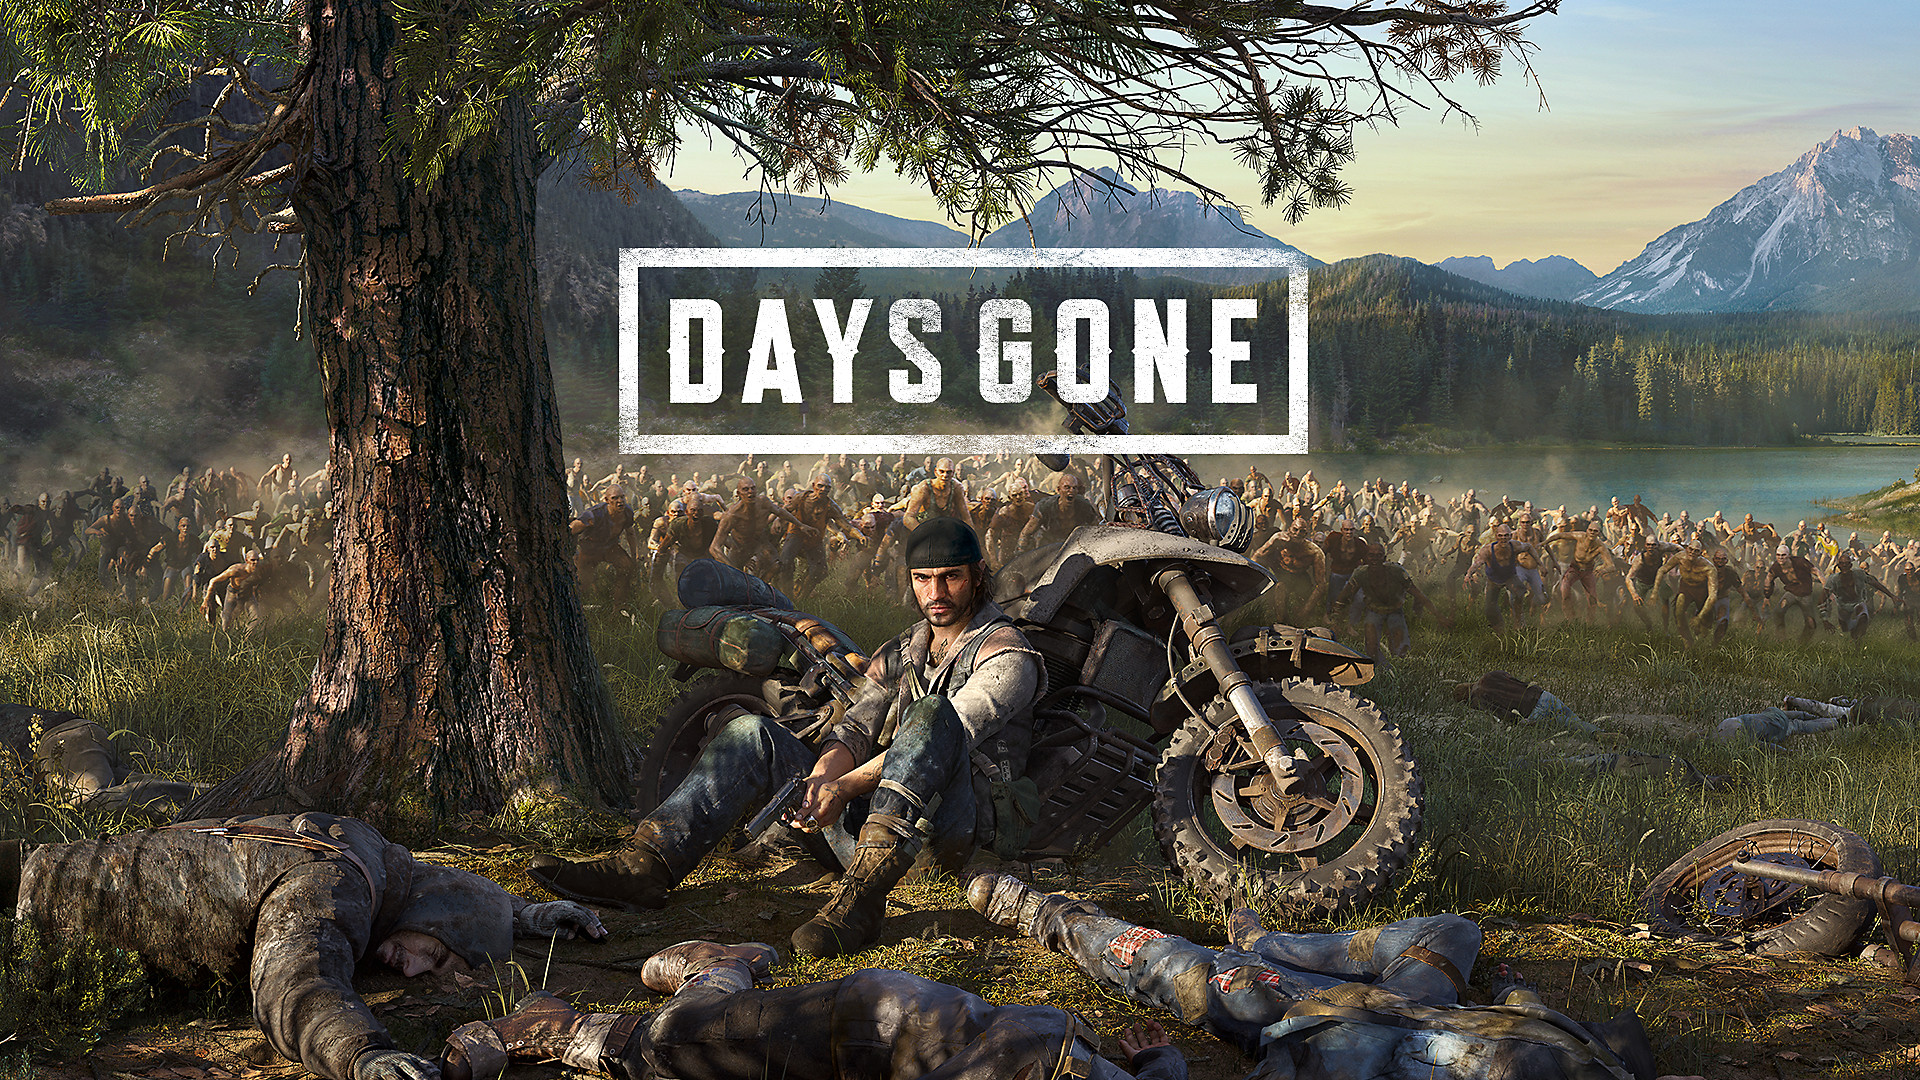 Days Gone PC gameplay for 28 minutes